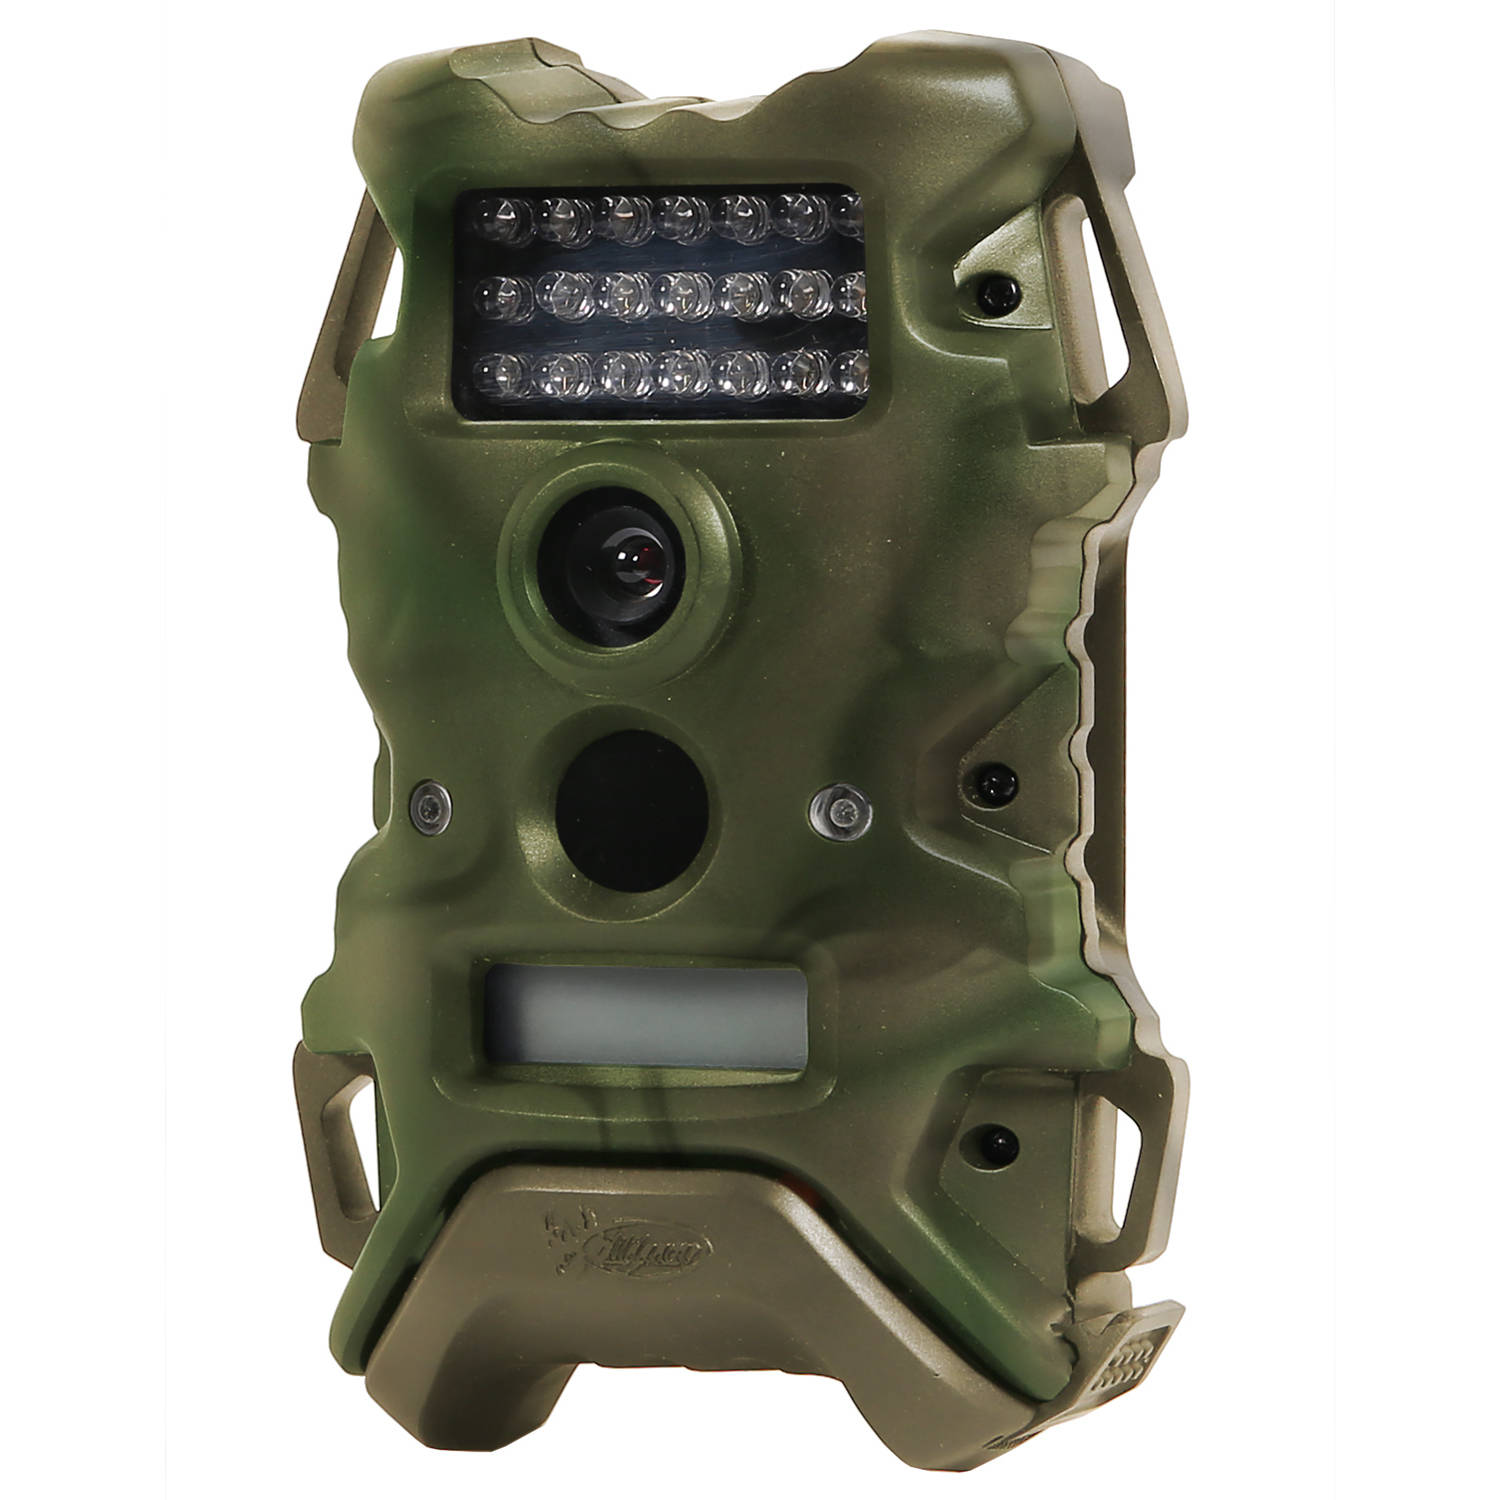 ***DISCONTINUED BY VENDOR 5/16*** Wildgame Innovations Terra 6- 6MP Game Camera